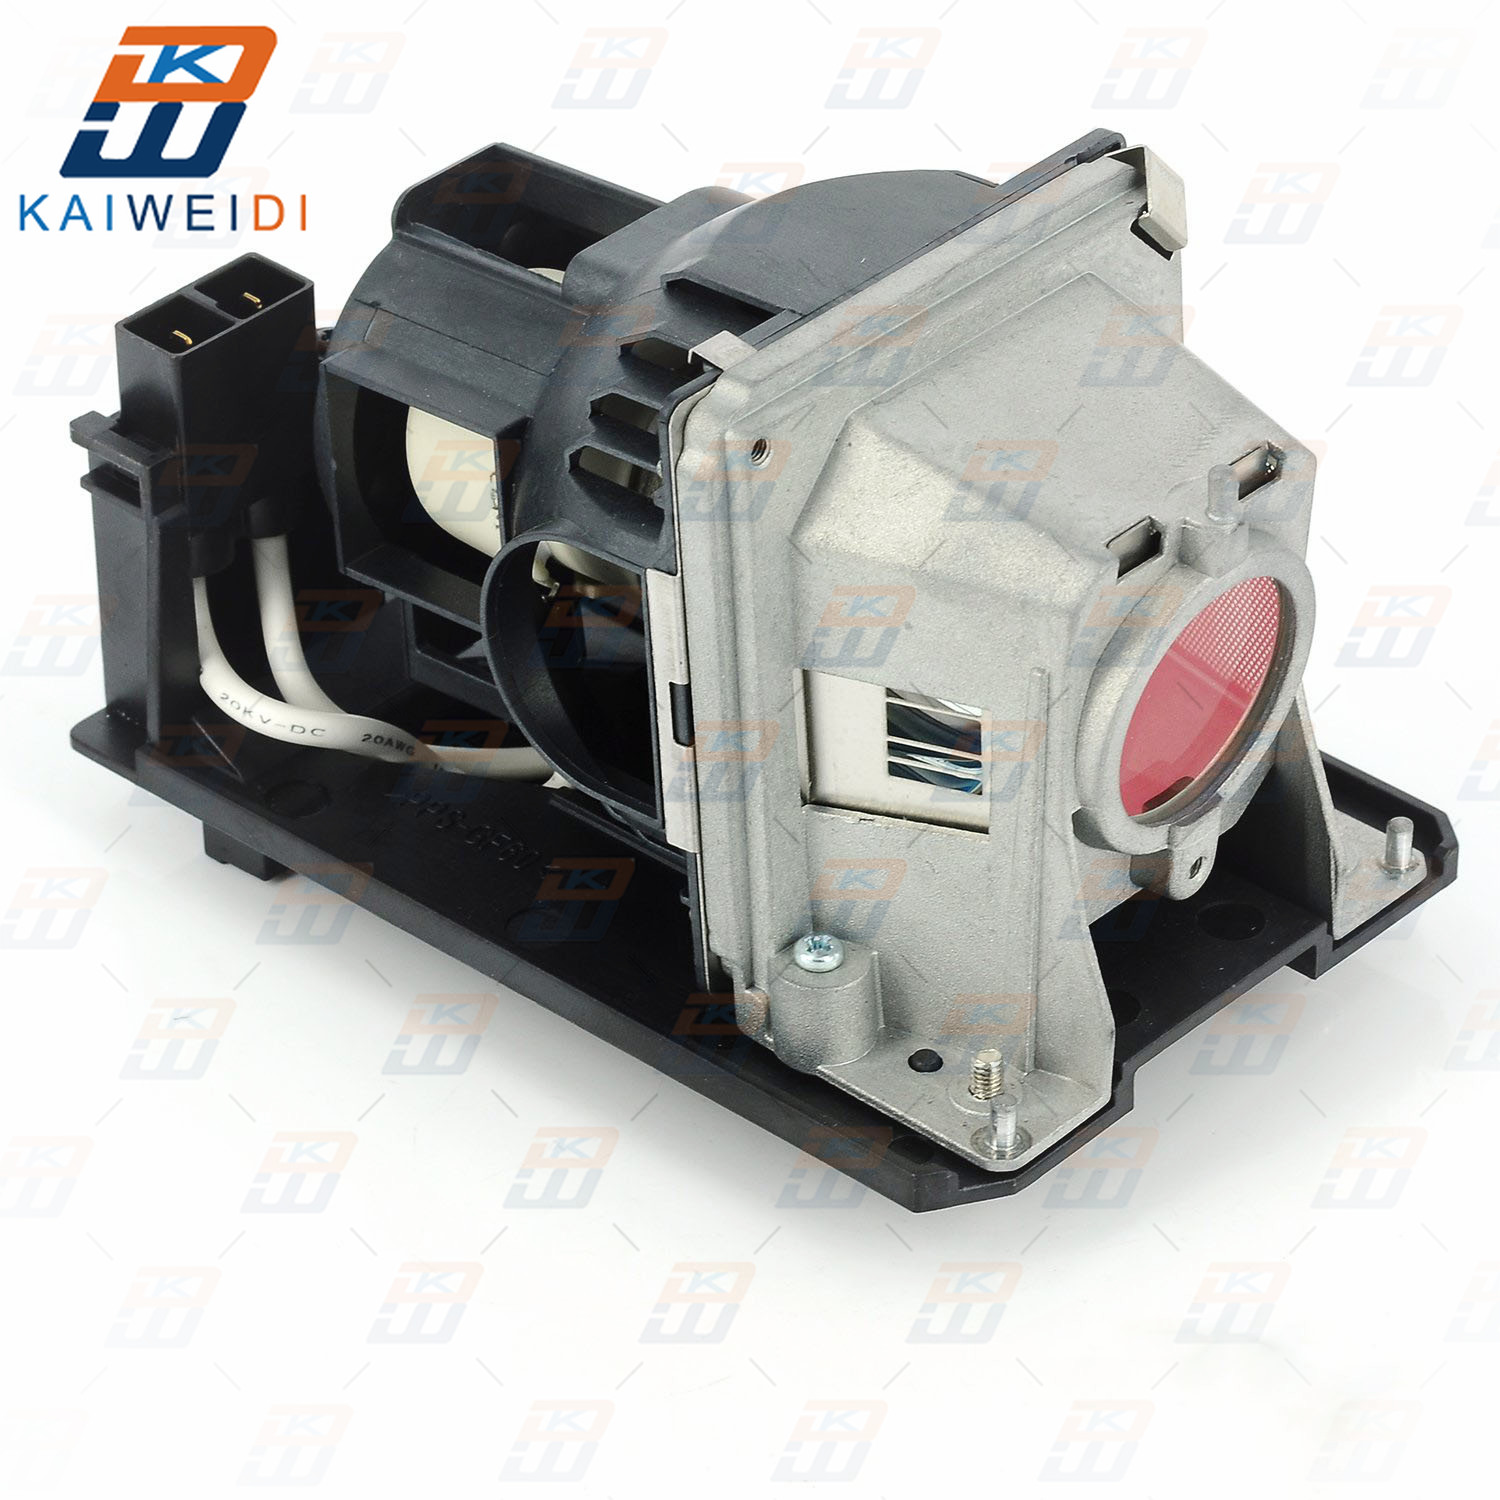 NP13LP NP18LP/ 60003128 Replacement Projector Lamp With Housing For NEC NP-V300X V300X V300XG V300W V300WG V230X V260 VE280